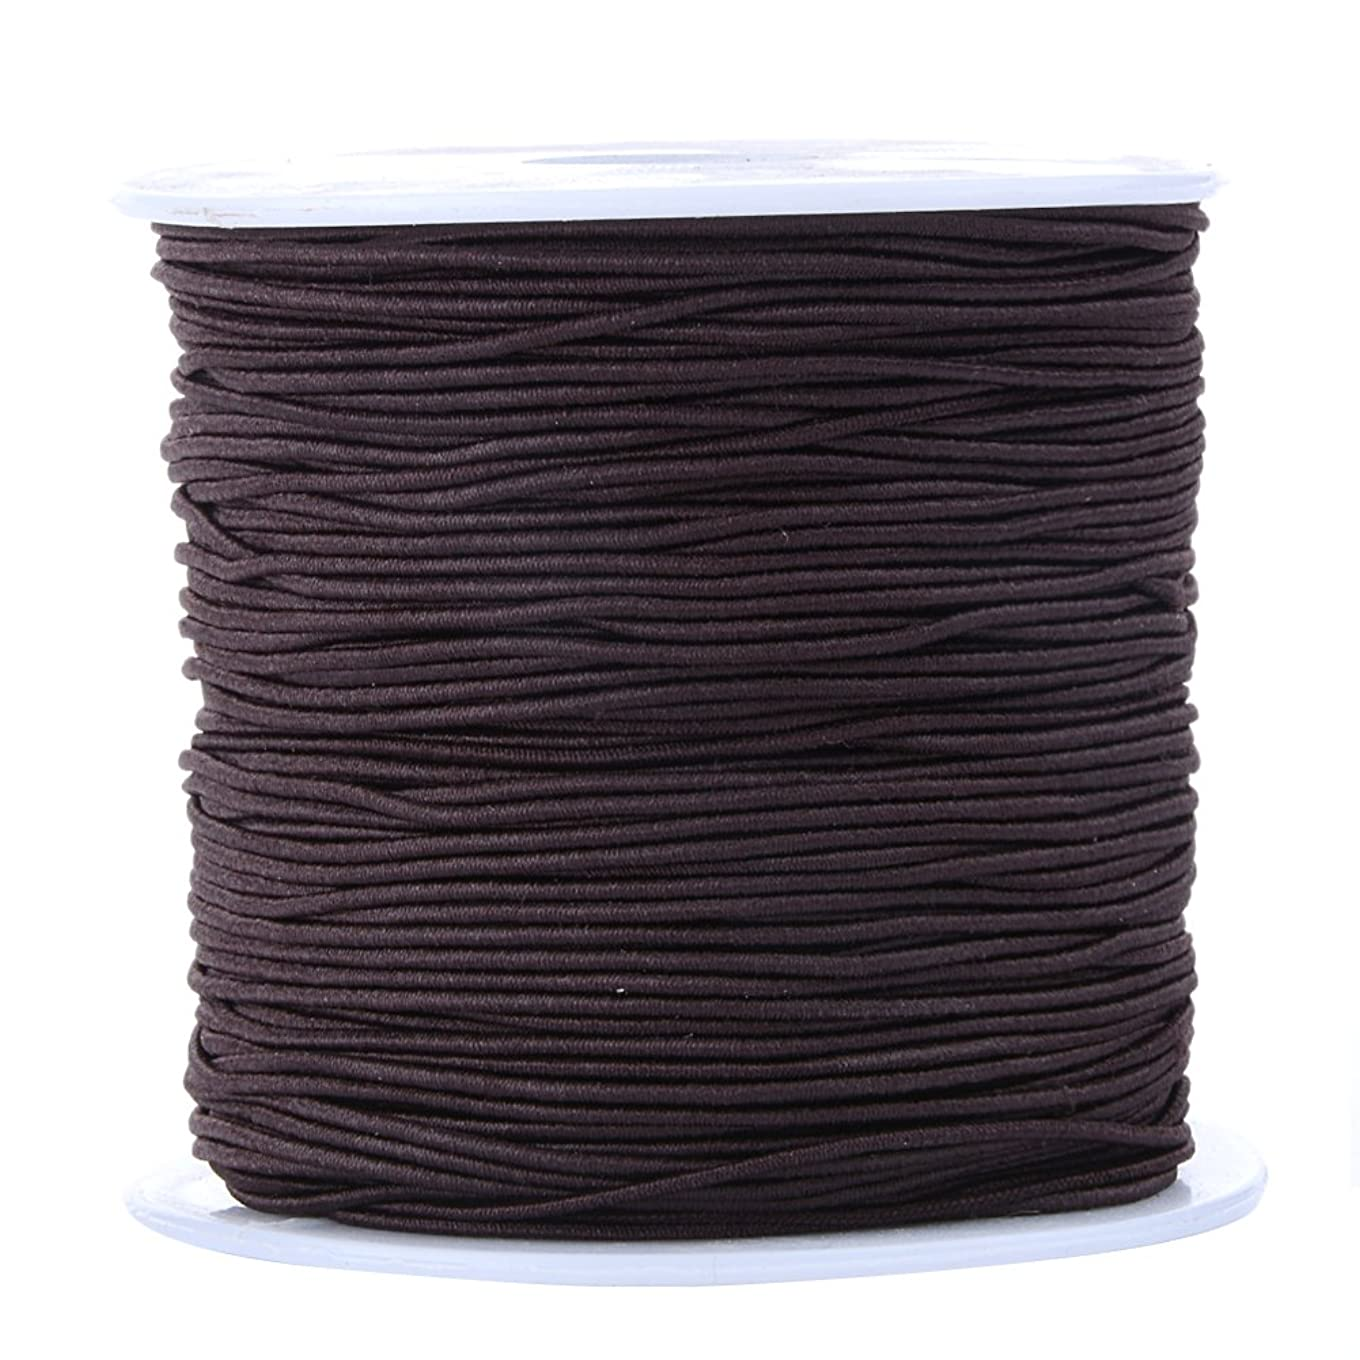 Bingcute 1.0MM Dark Brown Elastic Cord For Making Jewelry, 100 Yard csgzapkgkgov